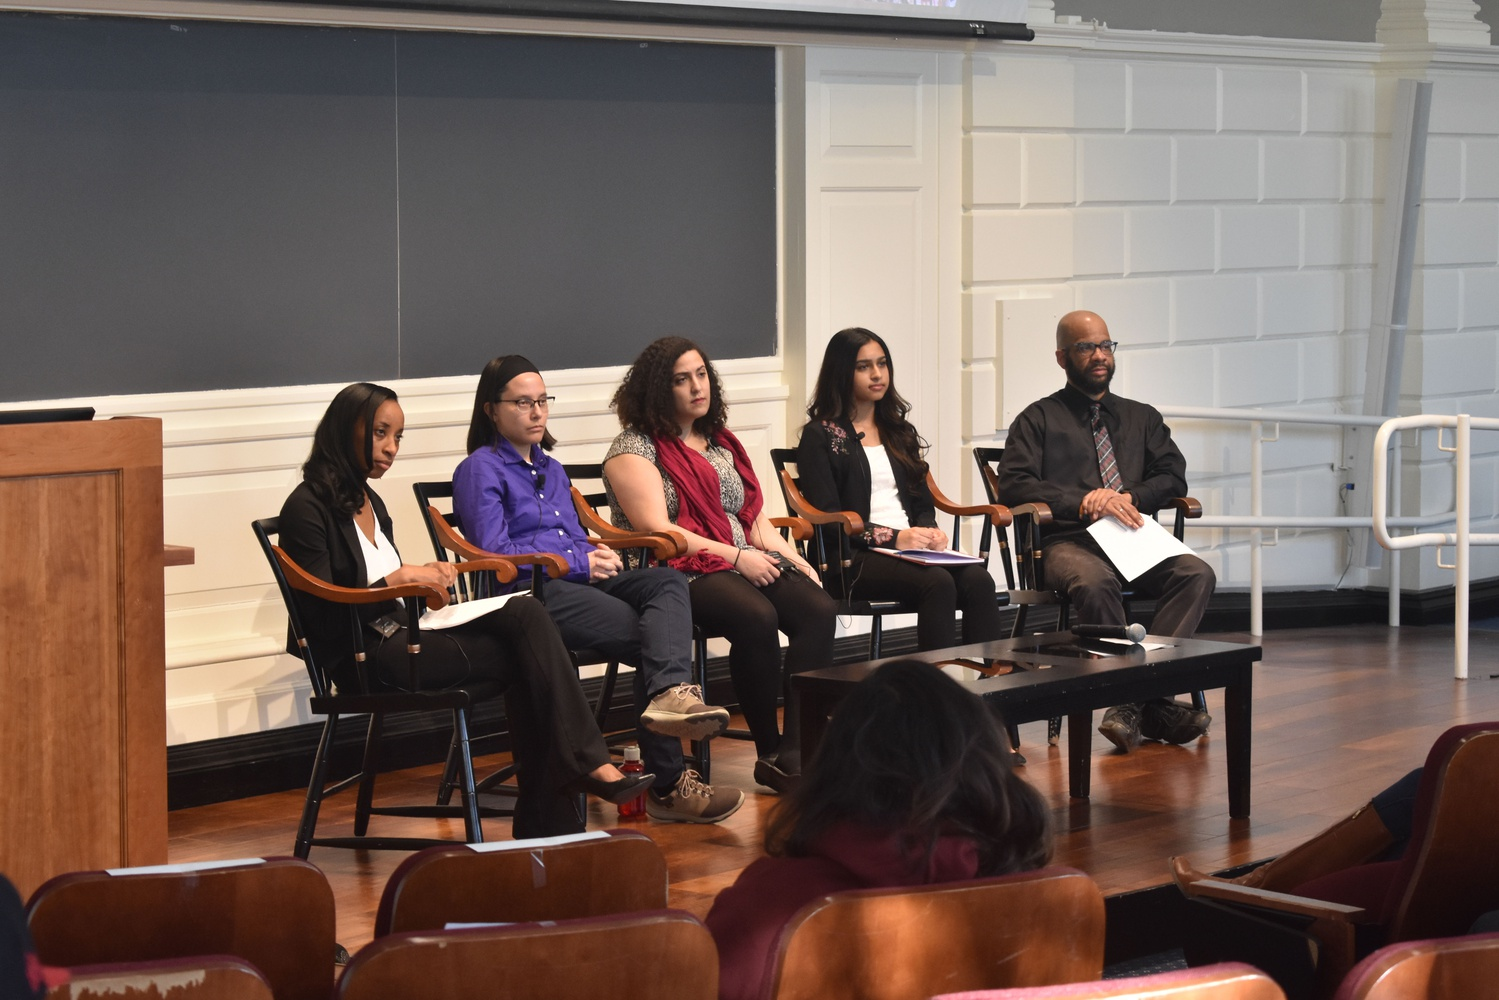 Scholars and activists discuss surveillance of Muslim and minority youth at a Harvard Graduate School of Education panel.